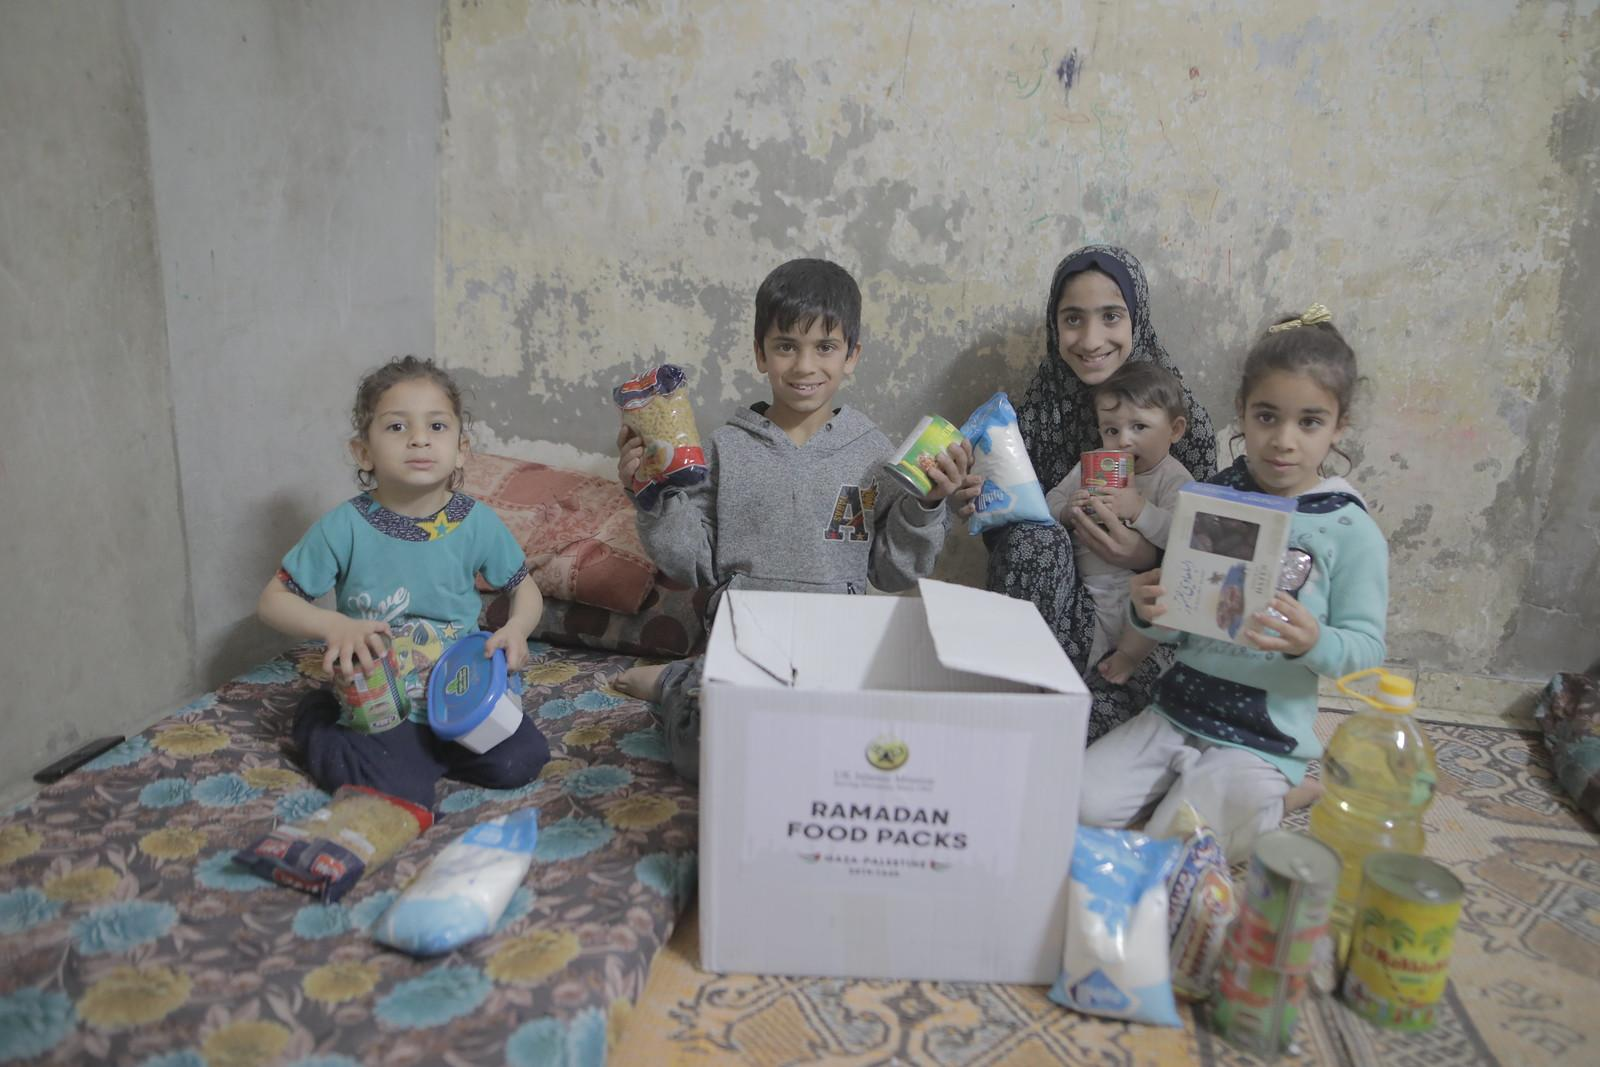 Ramadan Food Packs Gaza